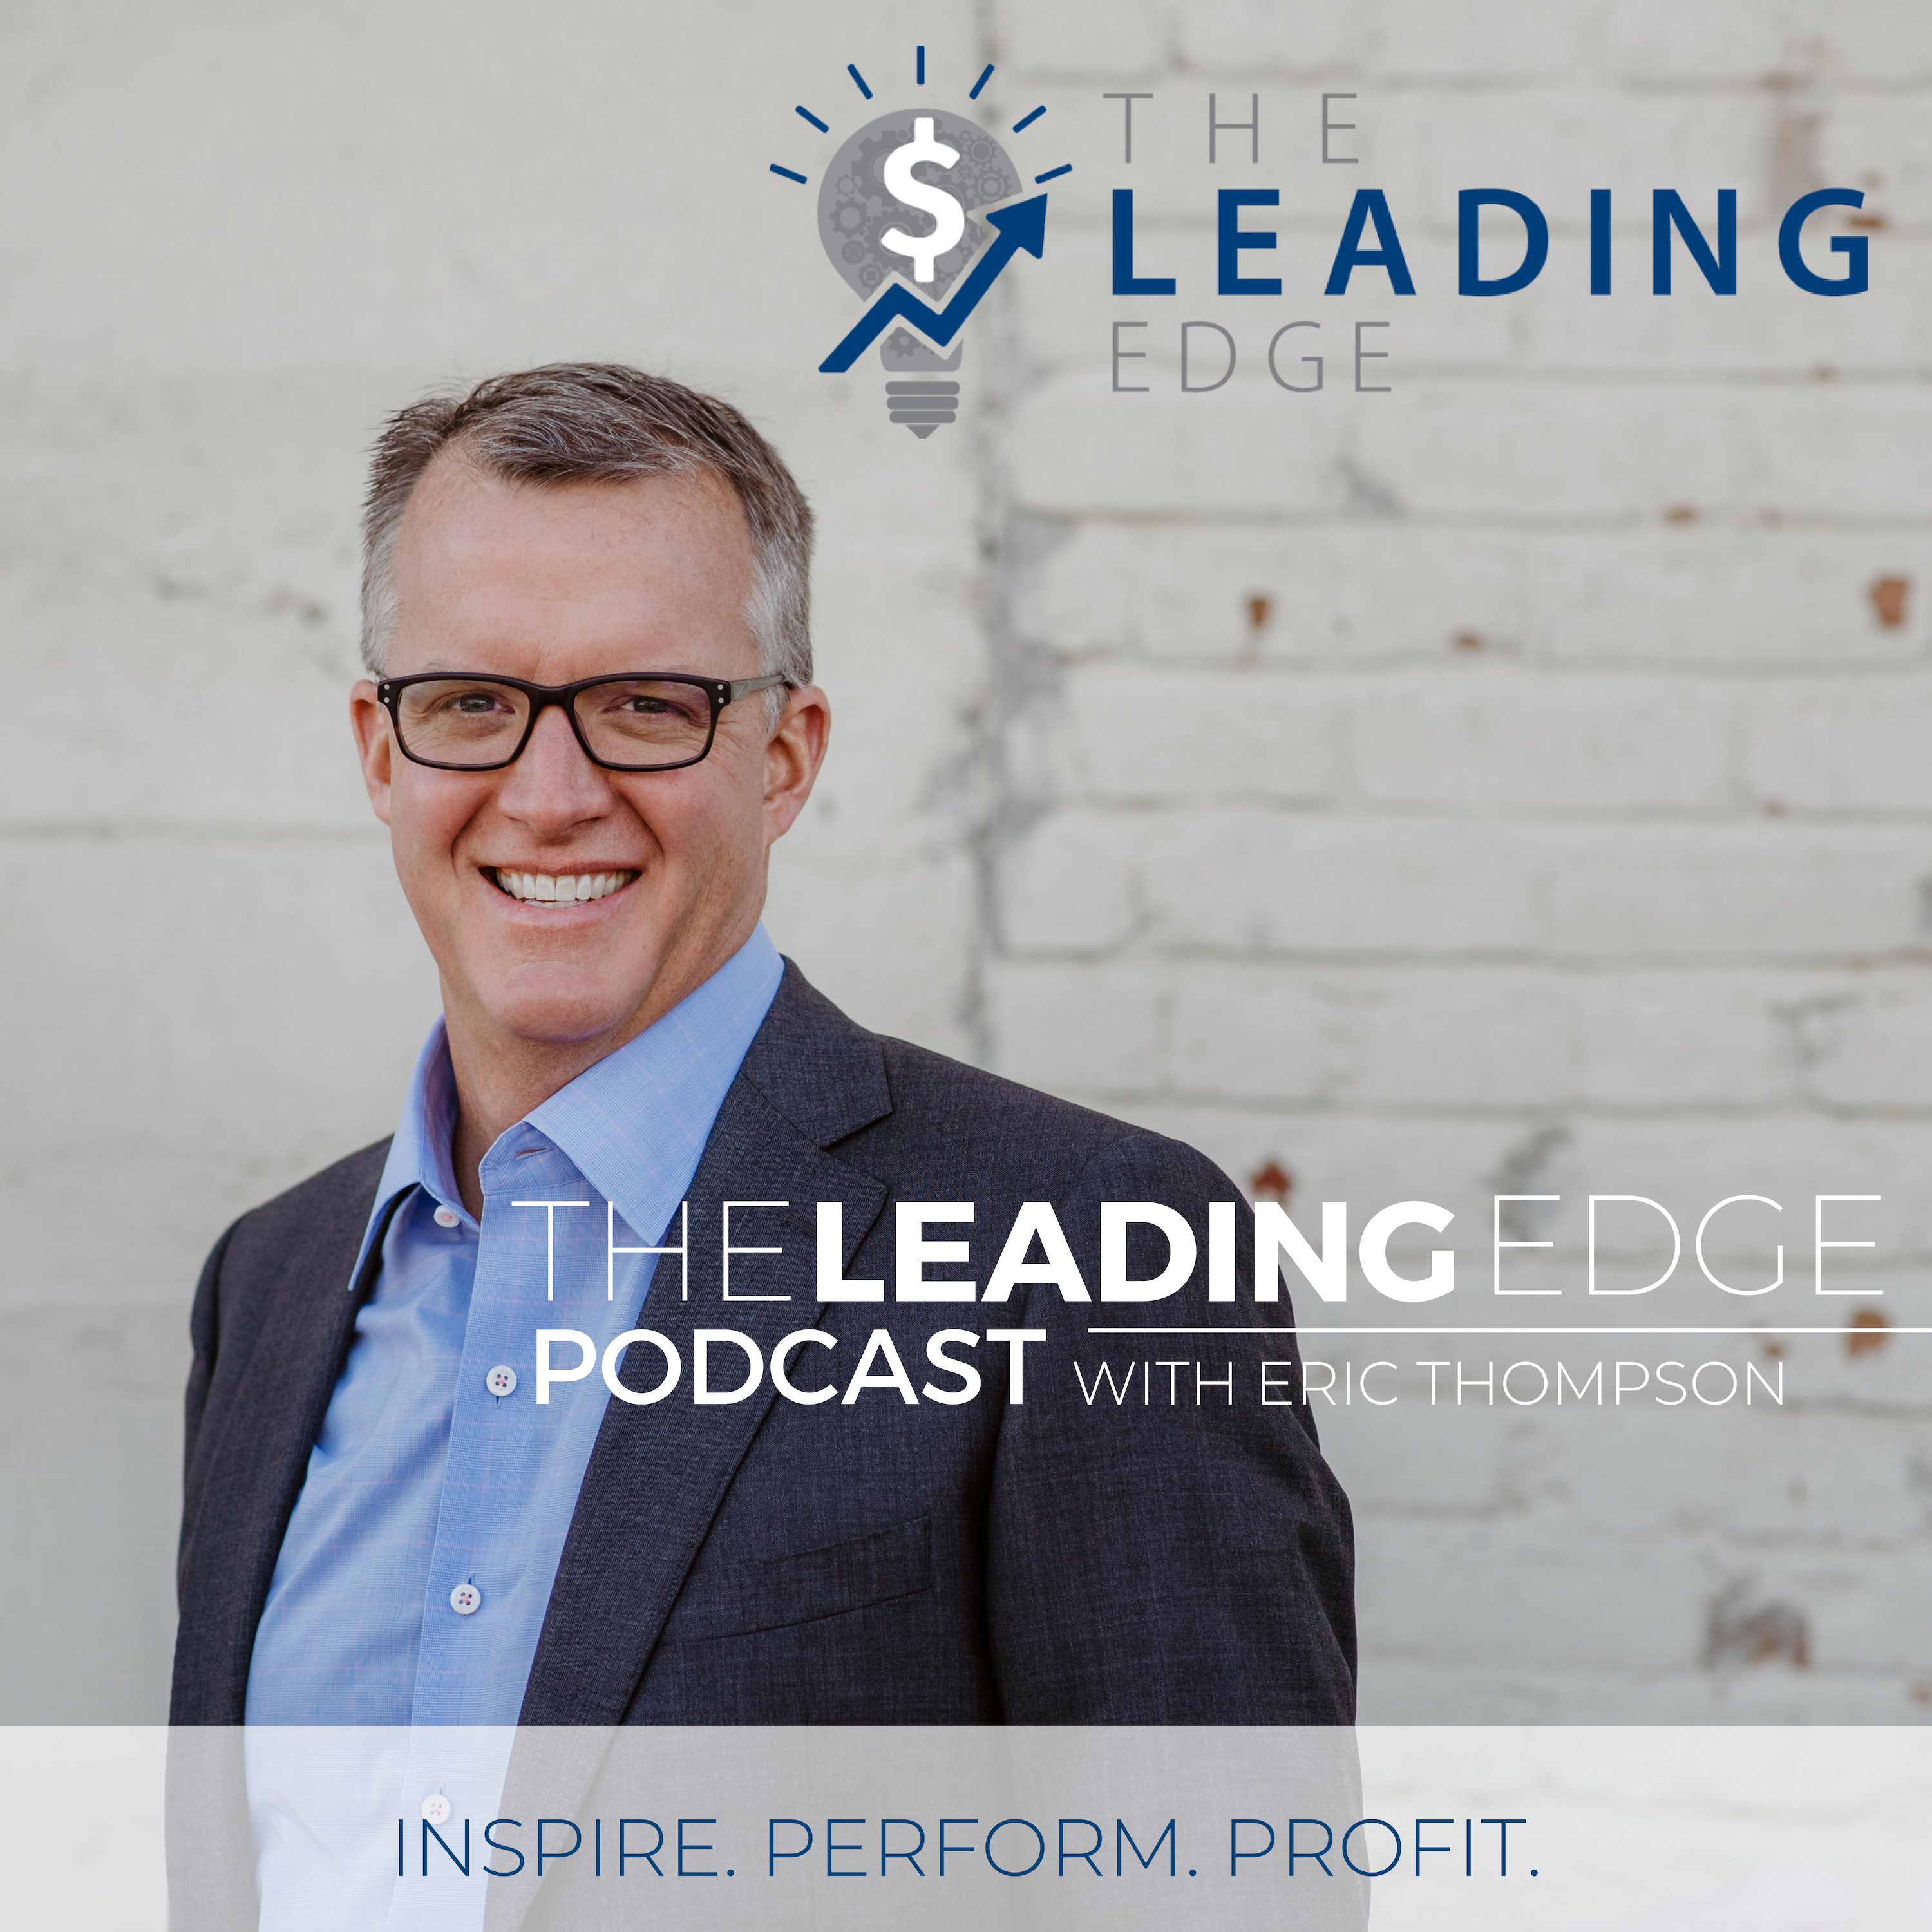 The Leading Edge Podcast | Listen Free on Castbox